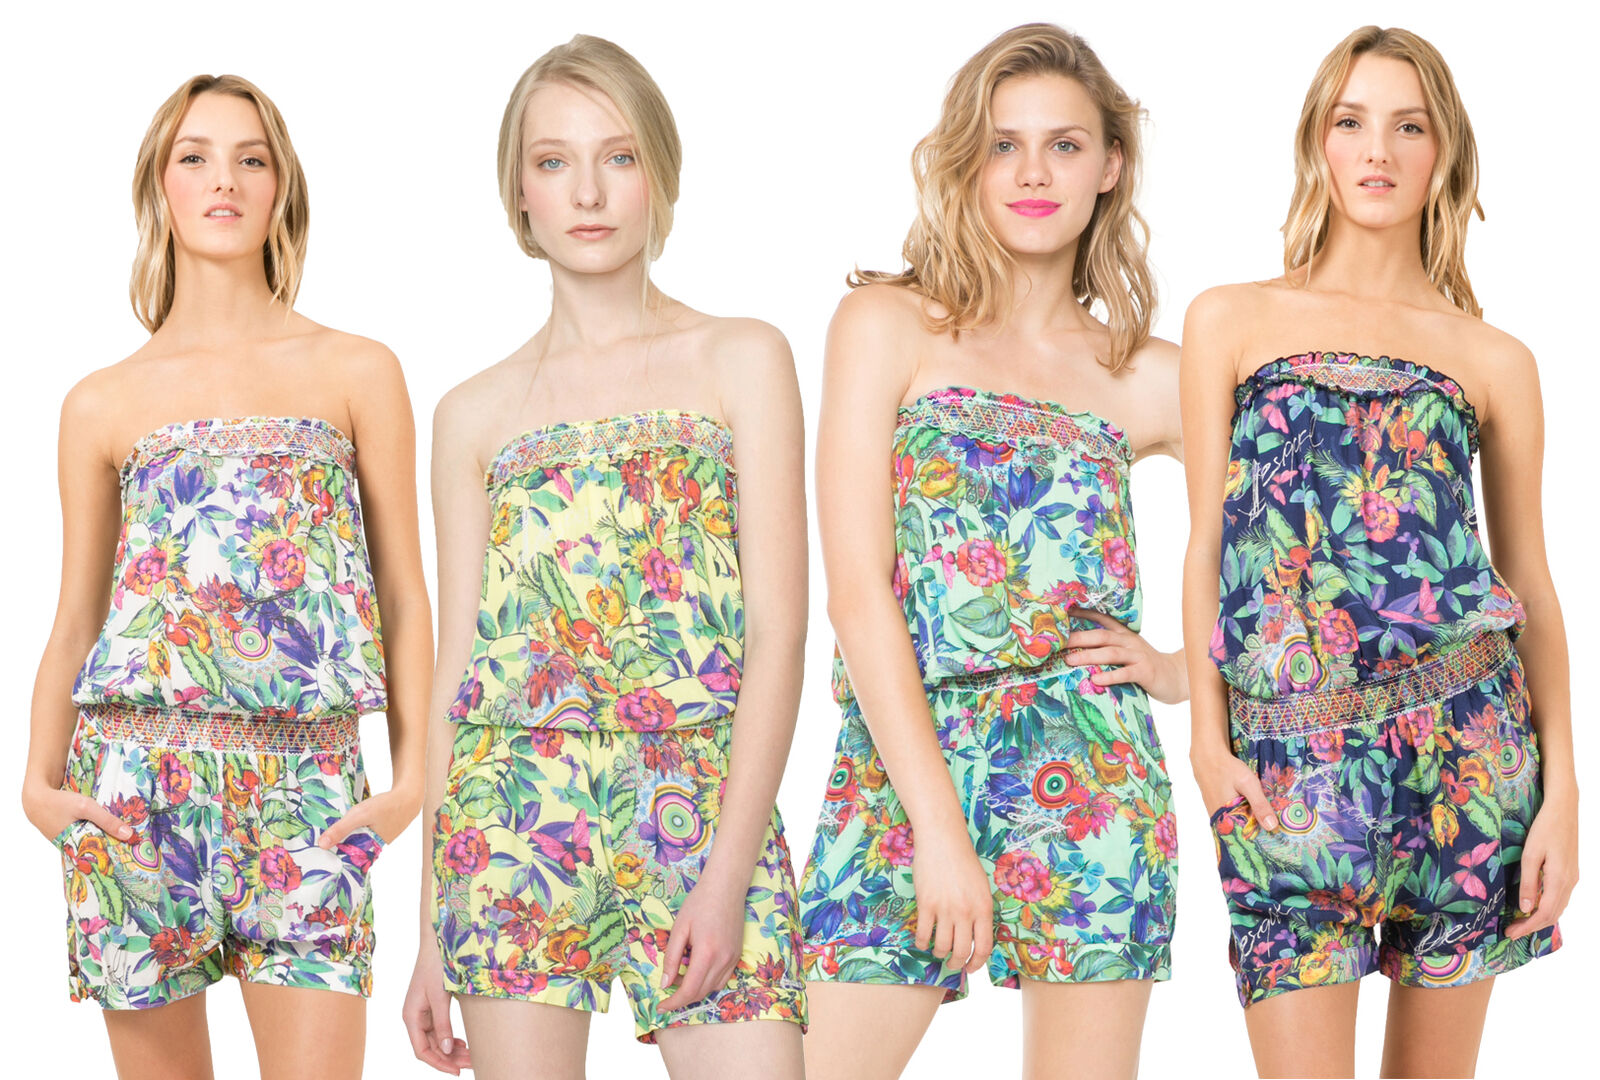 Desigual Printed Floral Barbara Playsuit Beach Cover Up S-XL RRP44